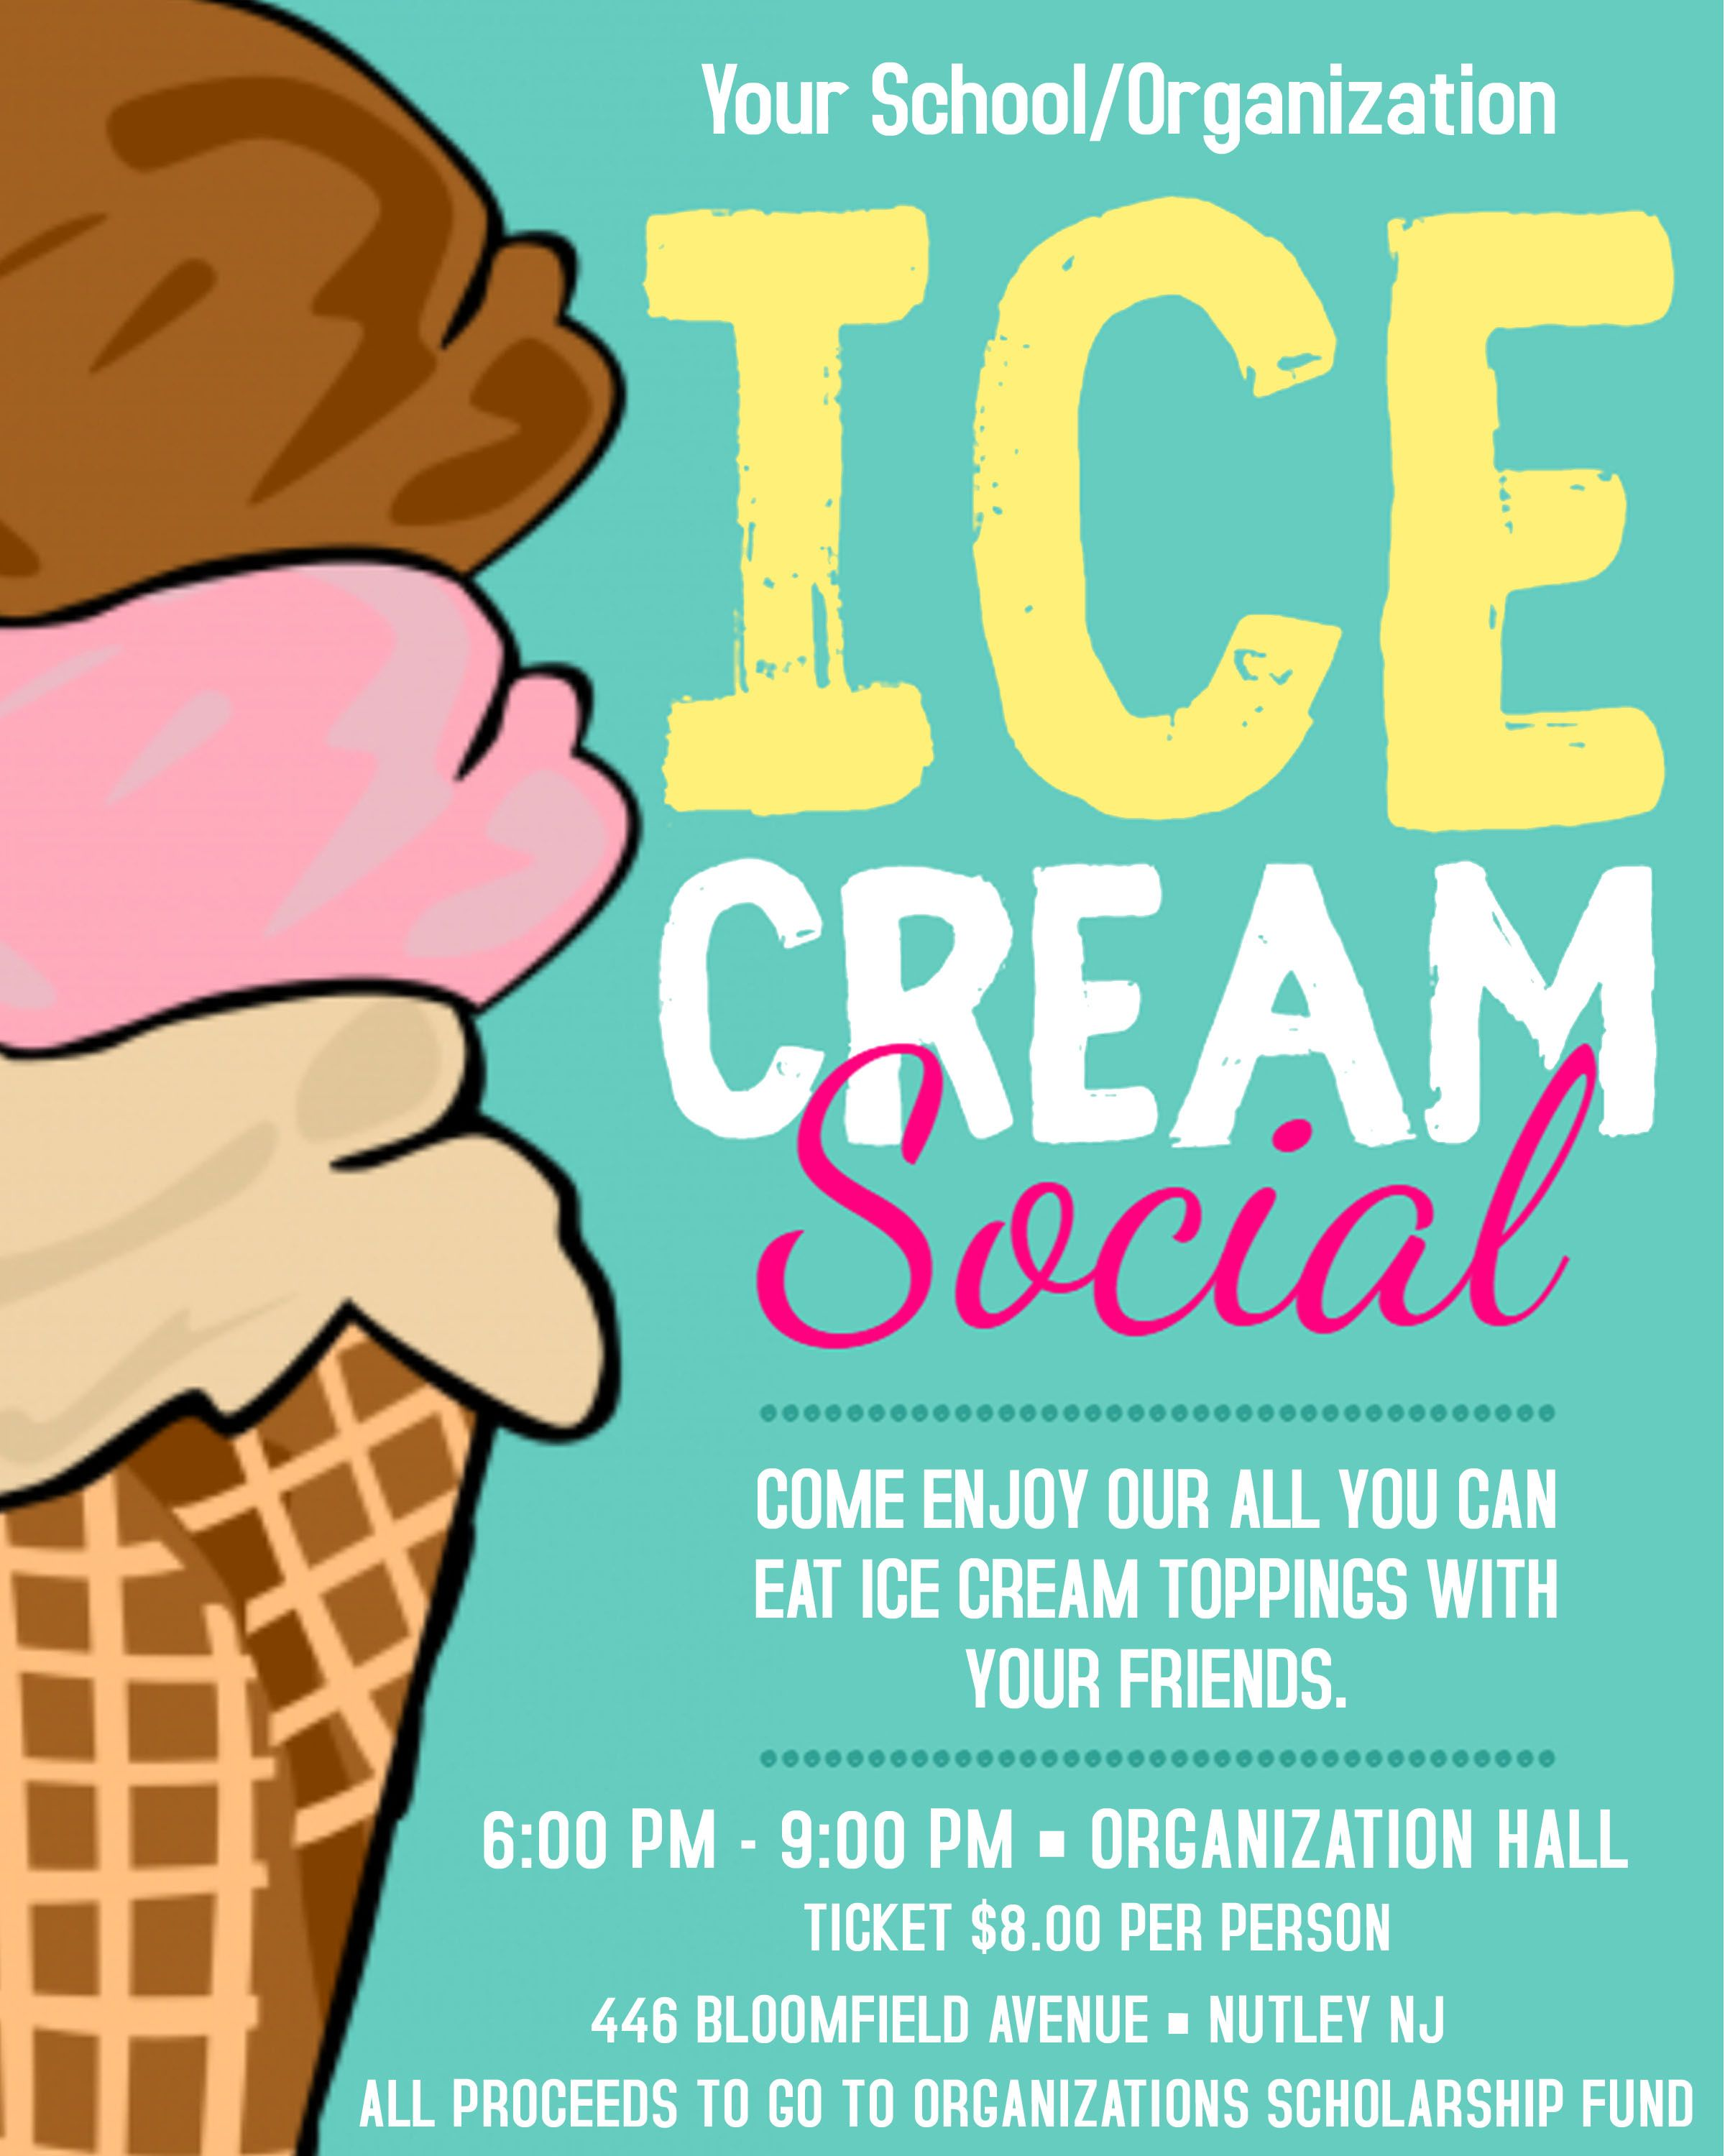 Ice Cream Social Flyer Template Editable Event Flyer Poster Instant Download Psd File Blank Jpeg Background Ice Cream Social Invitations Ice Cream Social Ice Cream Social Party